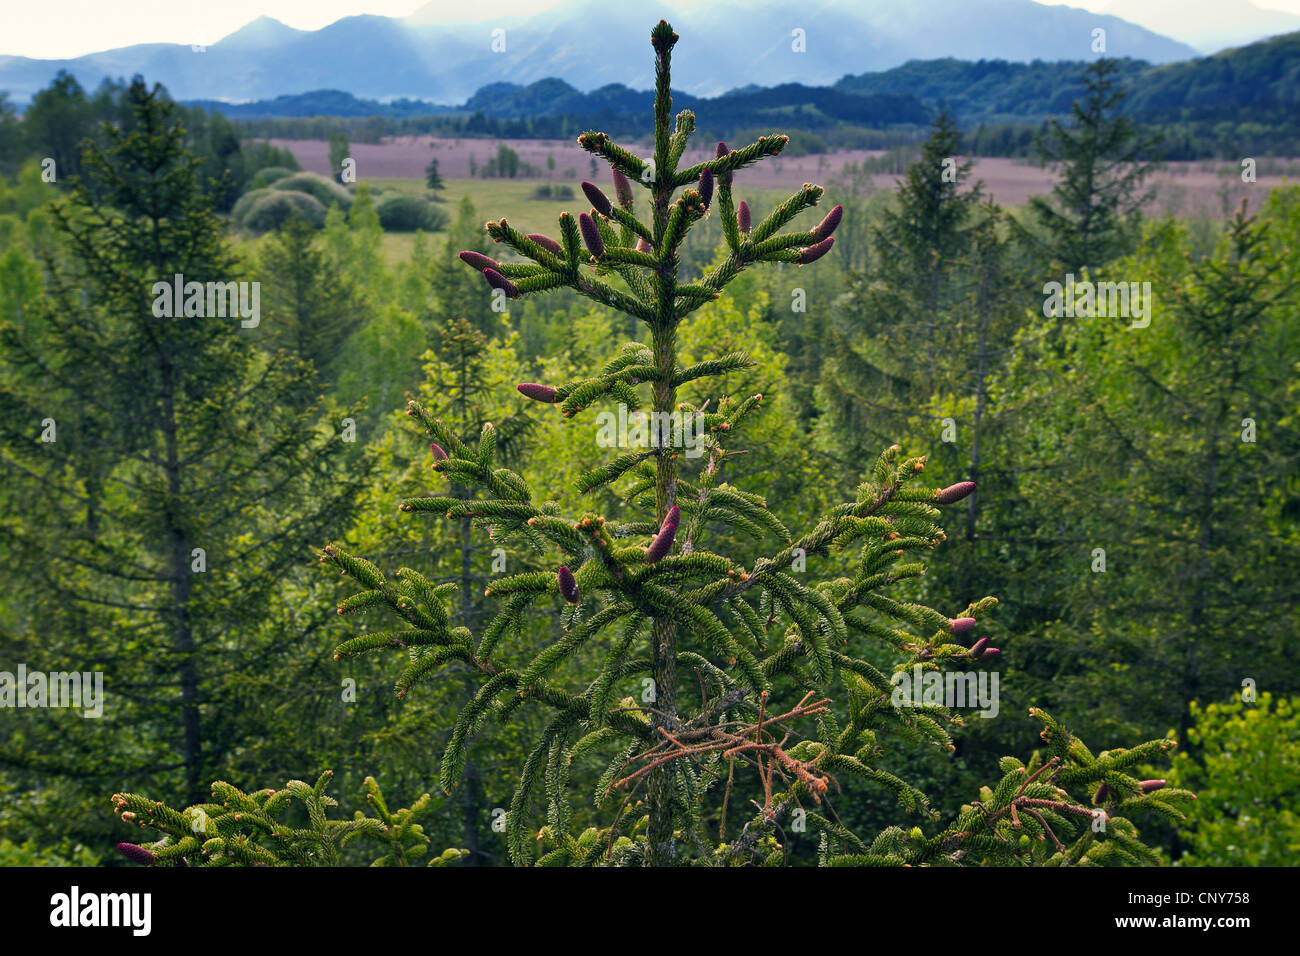 Norway spruce (Picea abies), flowering cones on a tree, Germany, Bavaria, Murnauer Moos - Stock Image